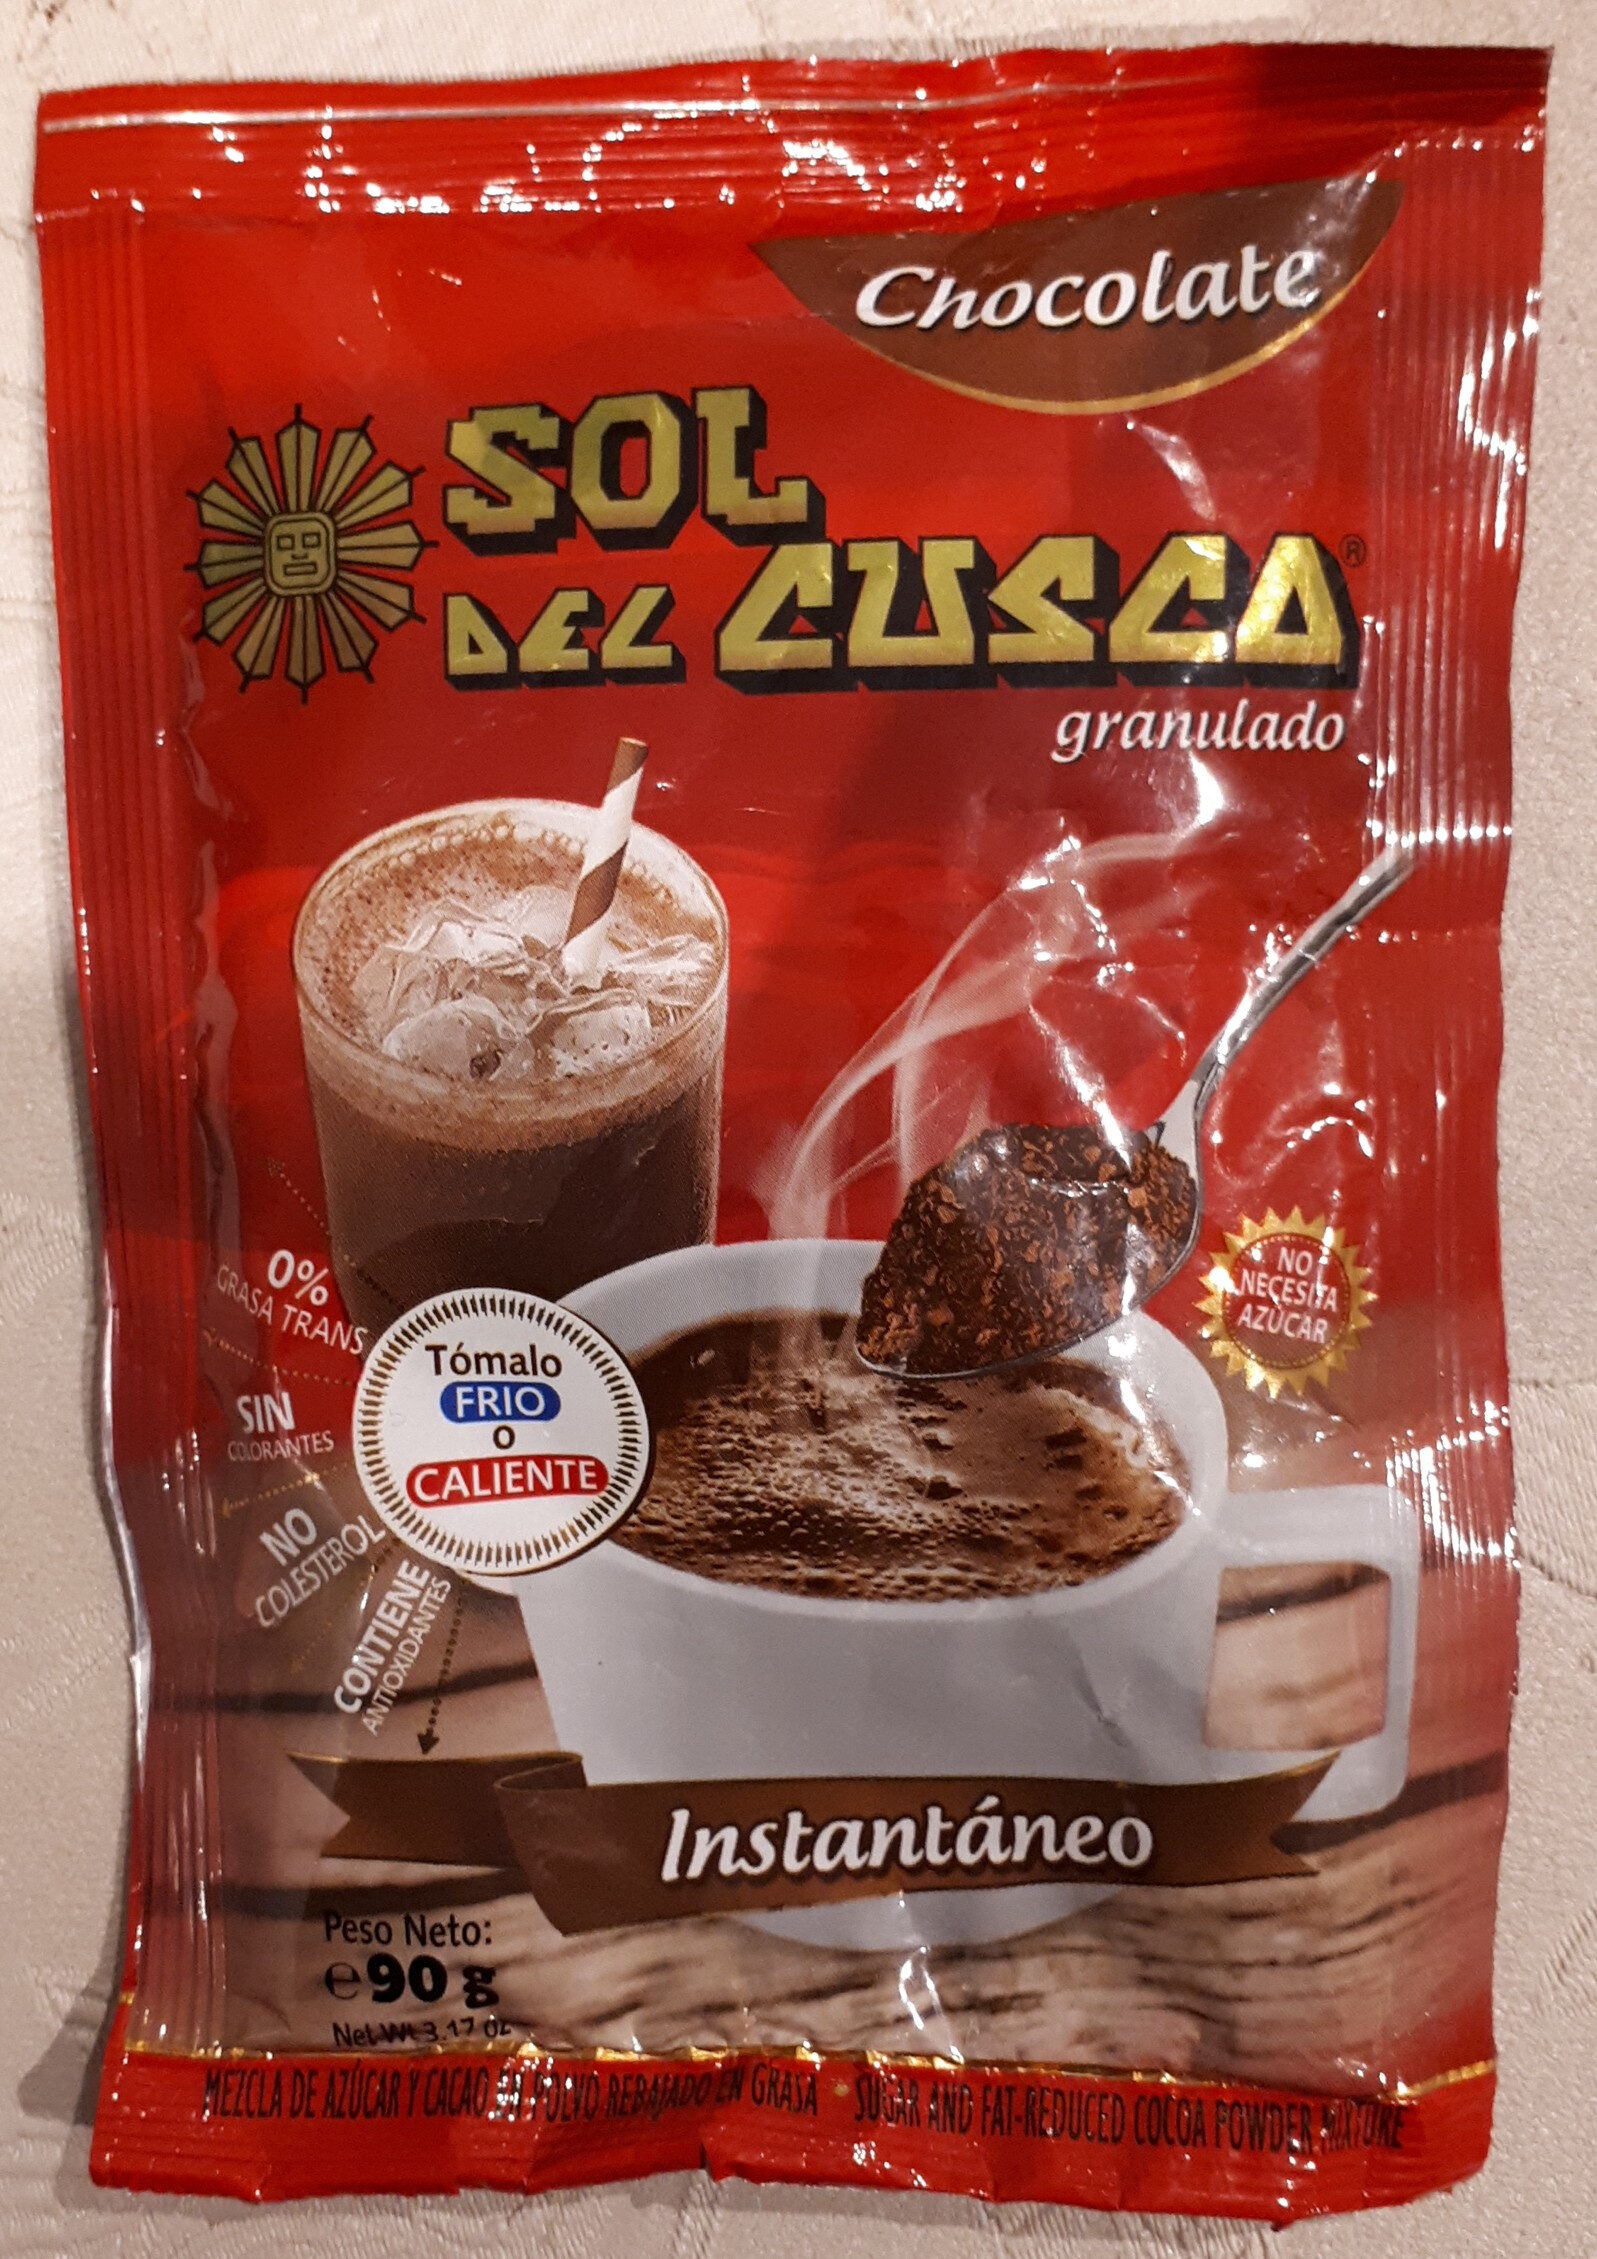 Chocolate - Product - es